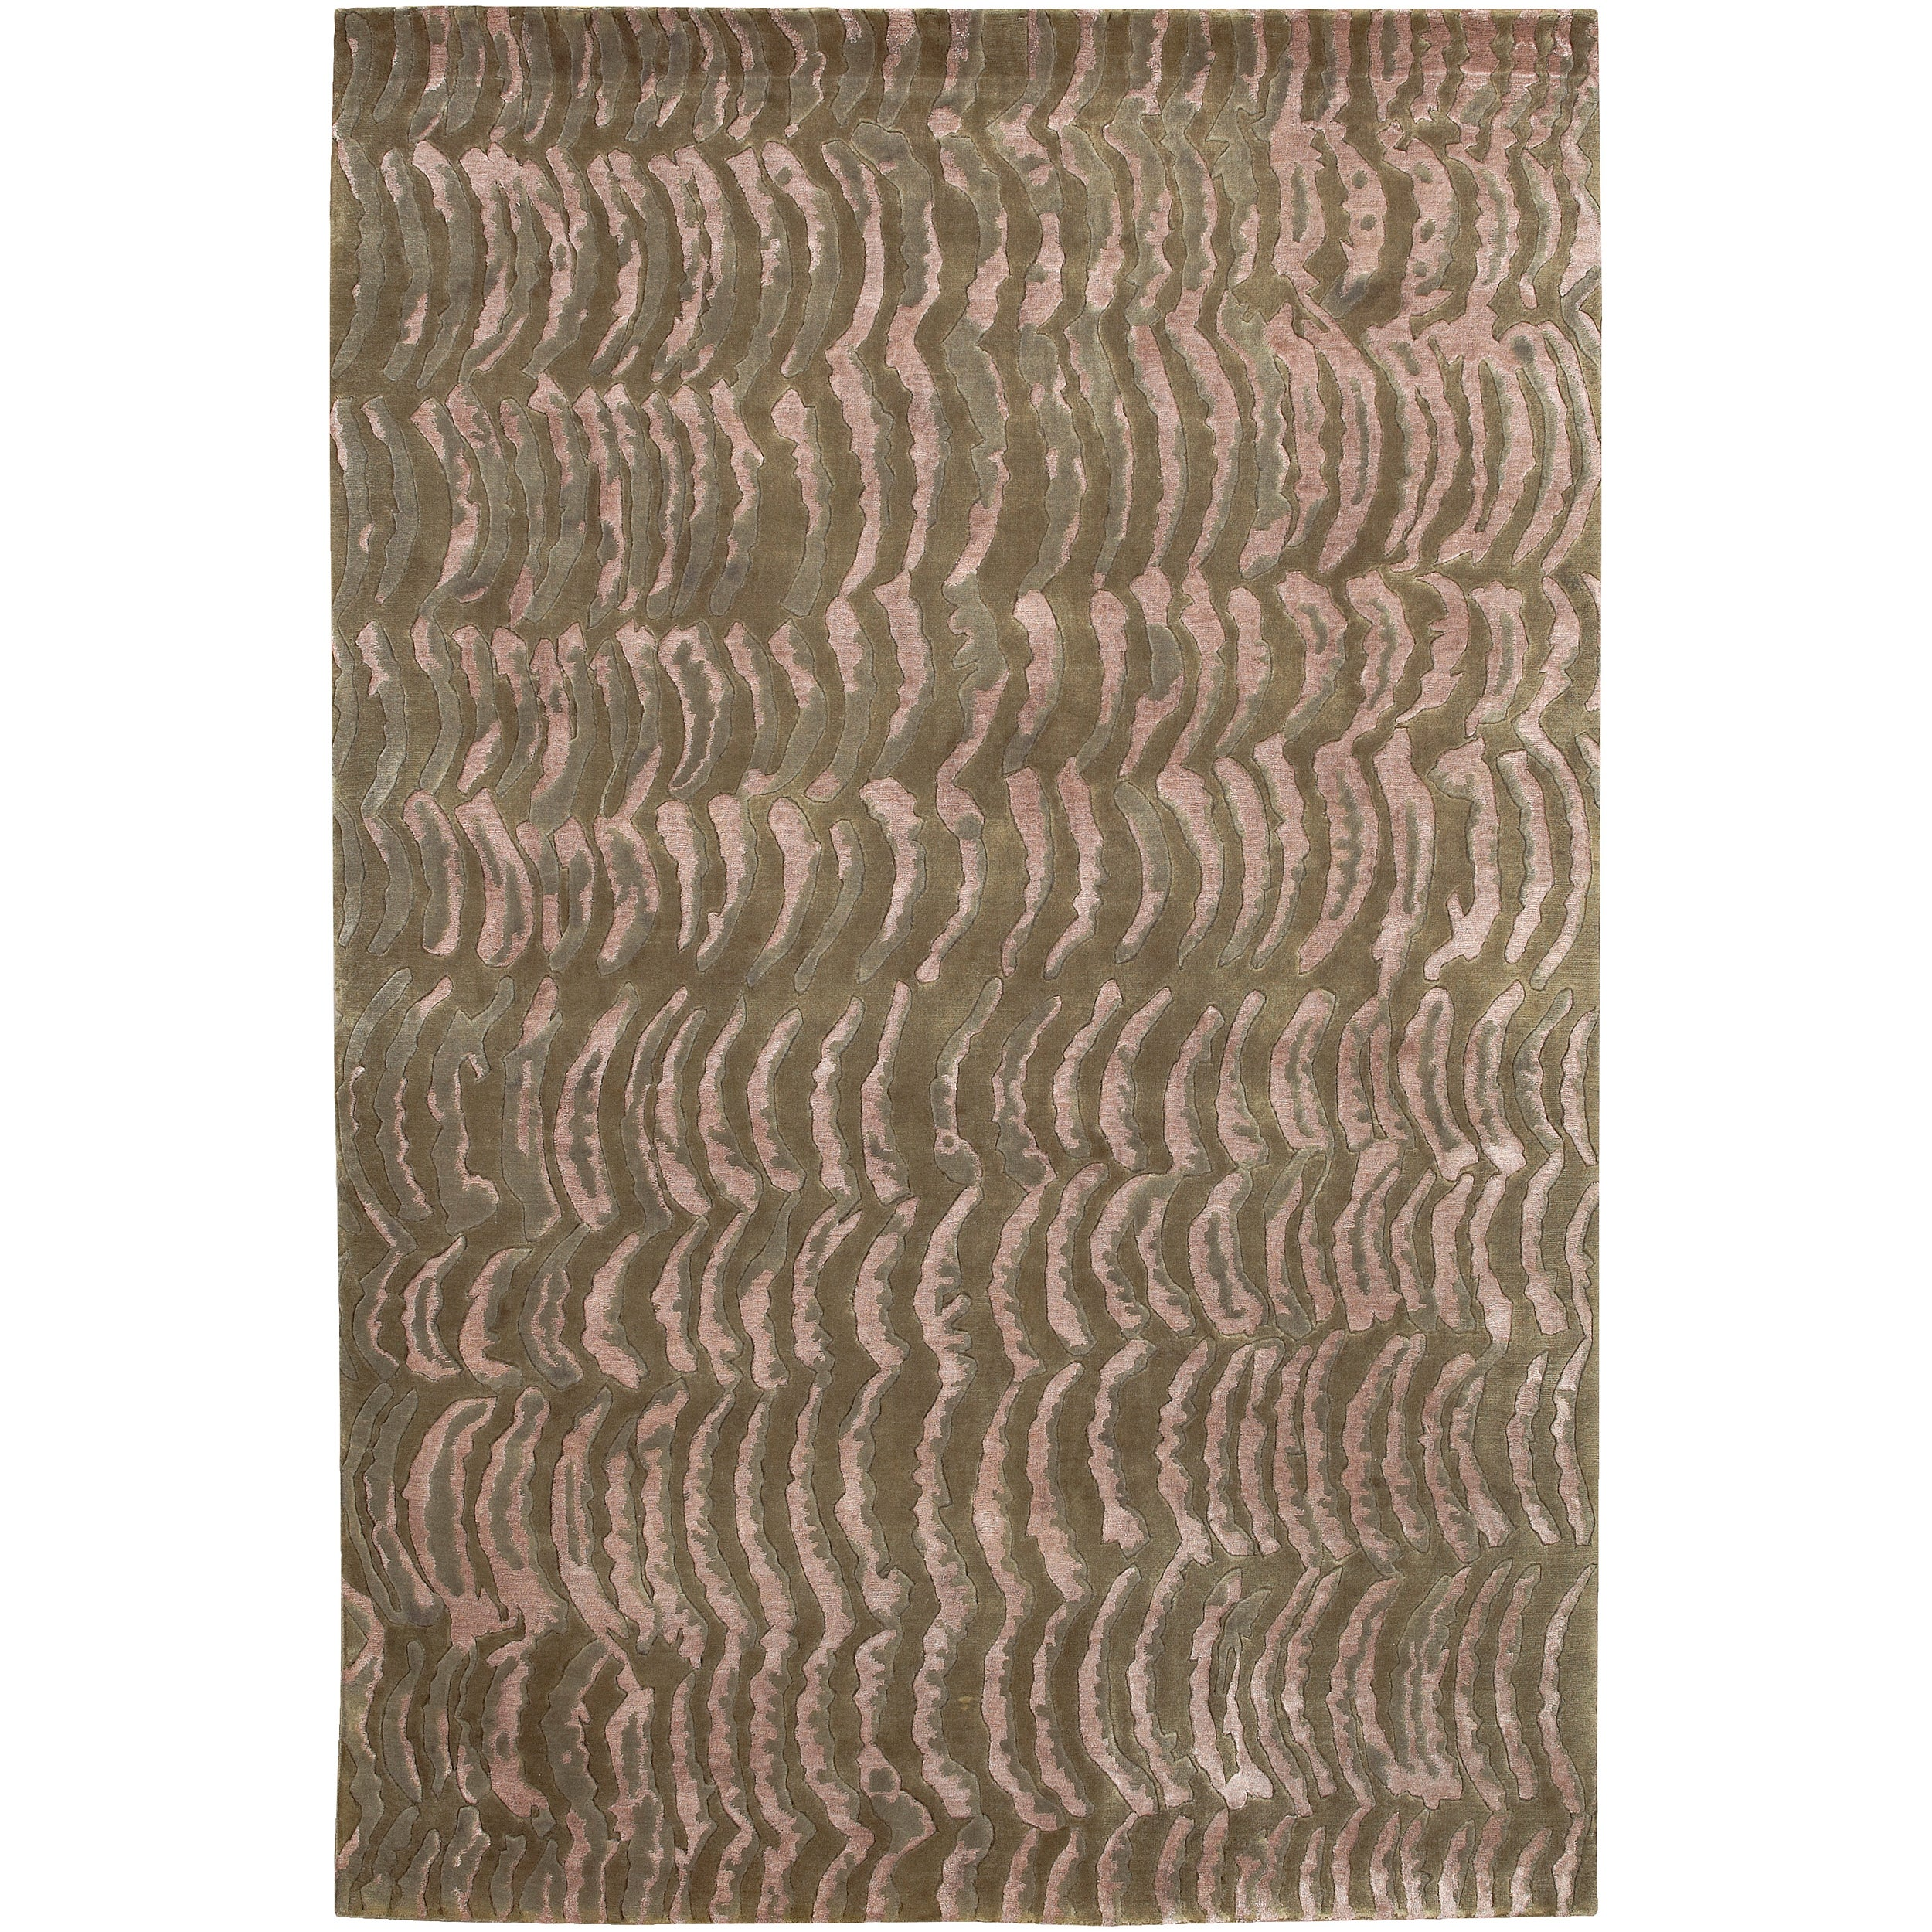 Julie Cohn Rose/Moss Hand-Knotted Multicolored Vilas Abstract Design Wool Rug (4' x 6')